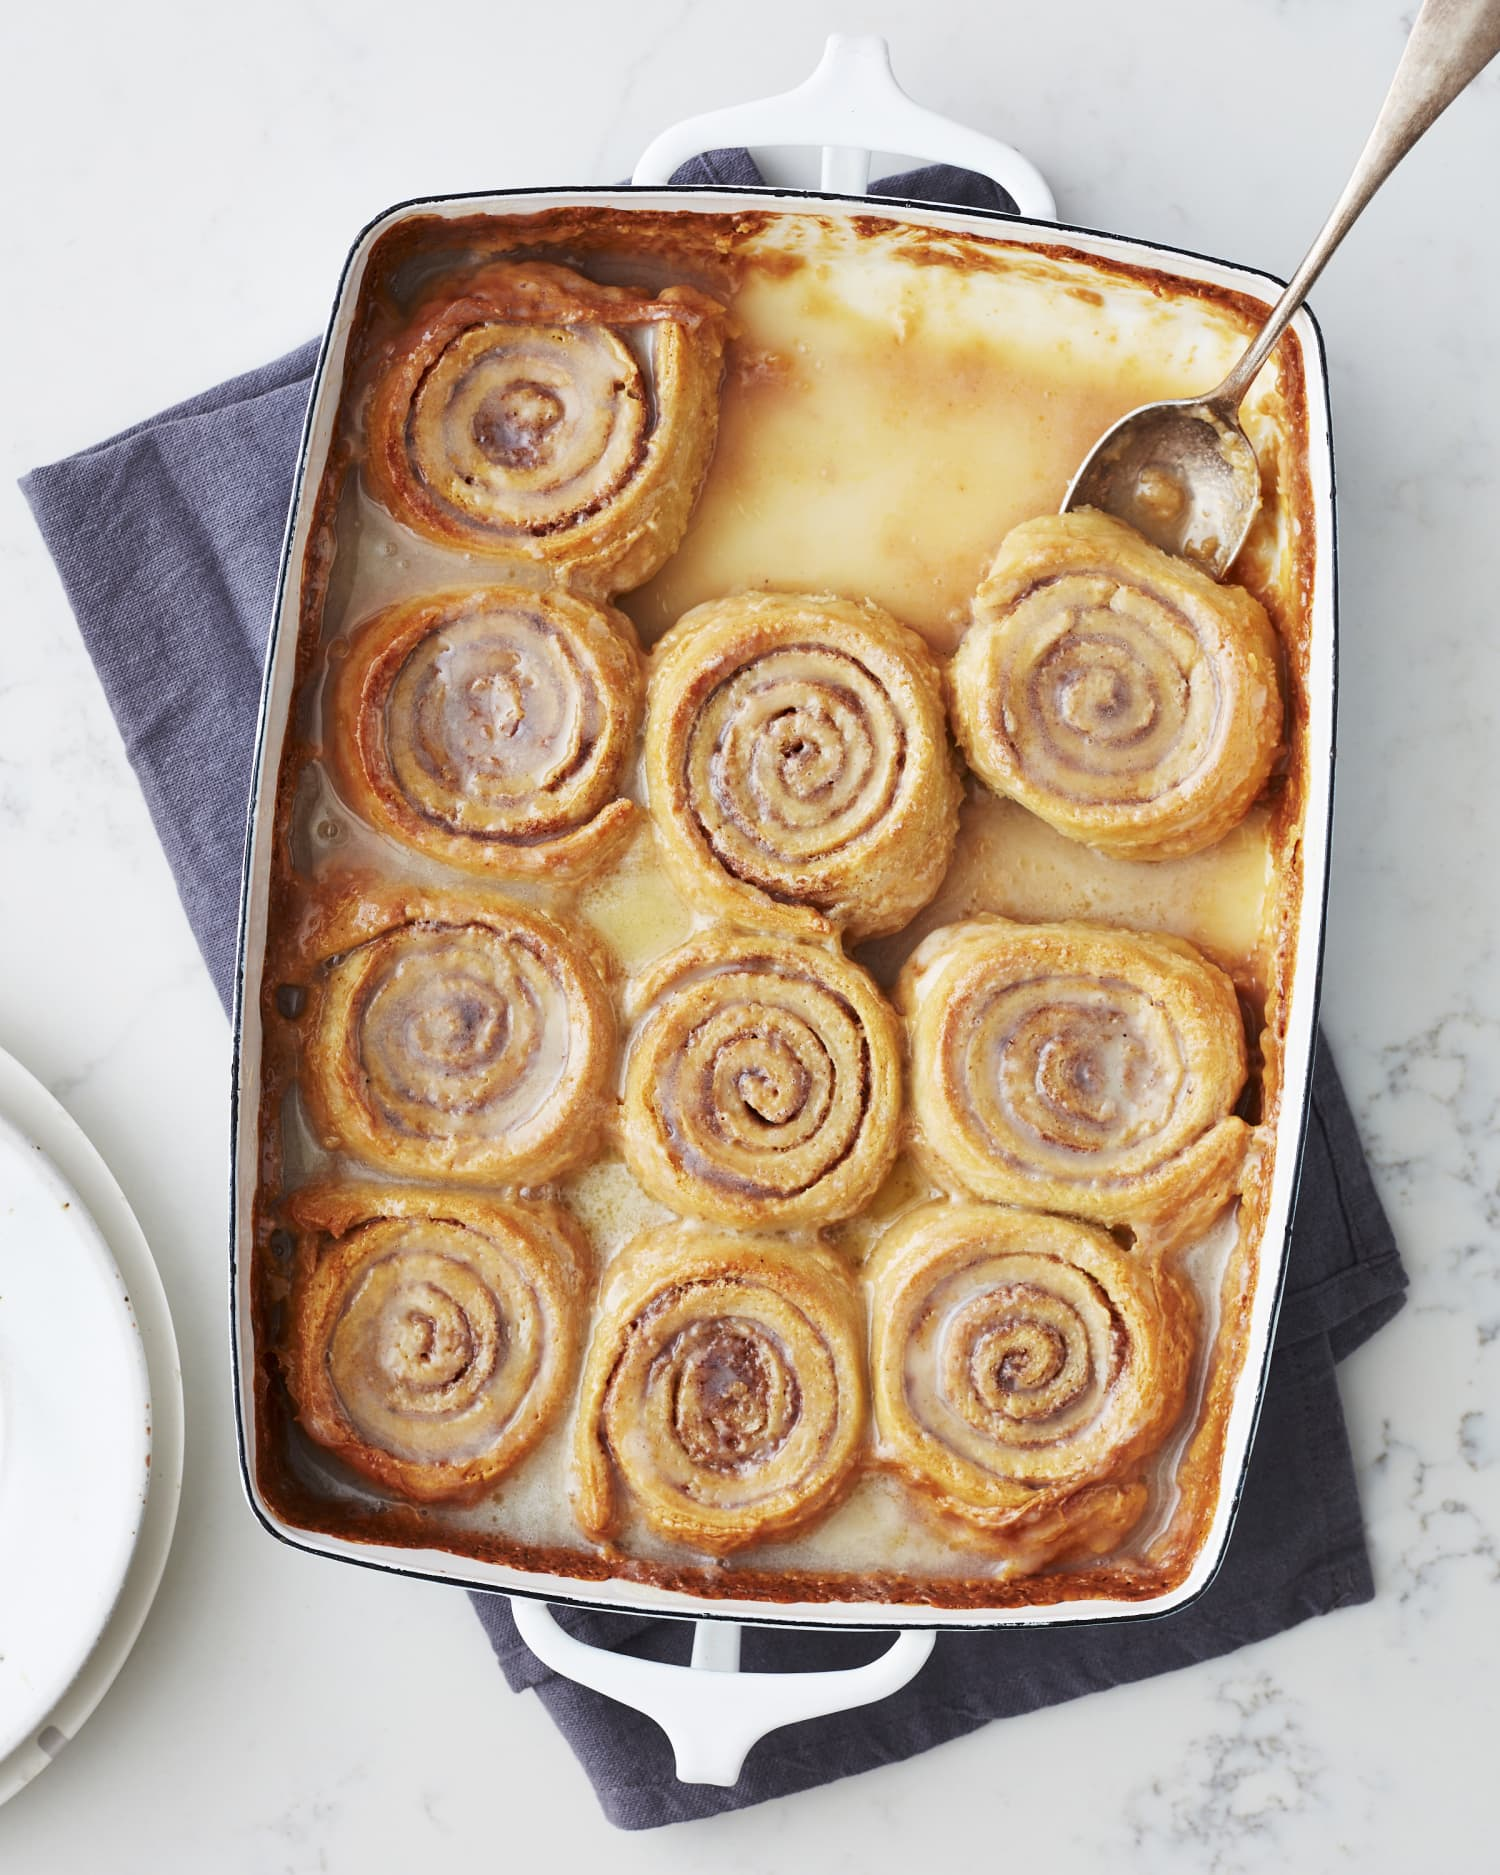 Southern Butter Rolls: A Nearly Forgotten Celebration of Southern Ingenuity